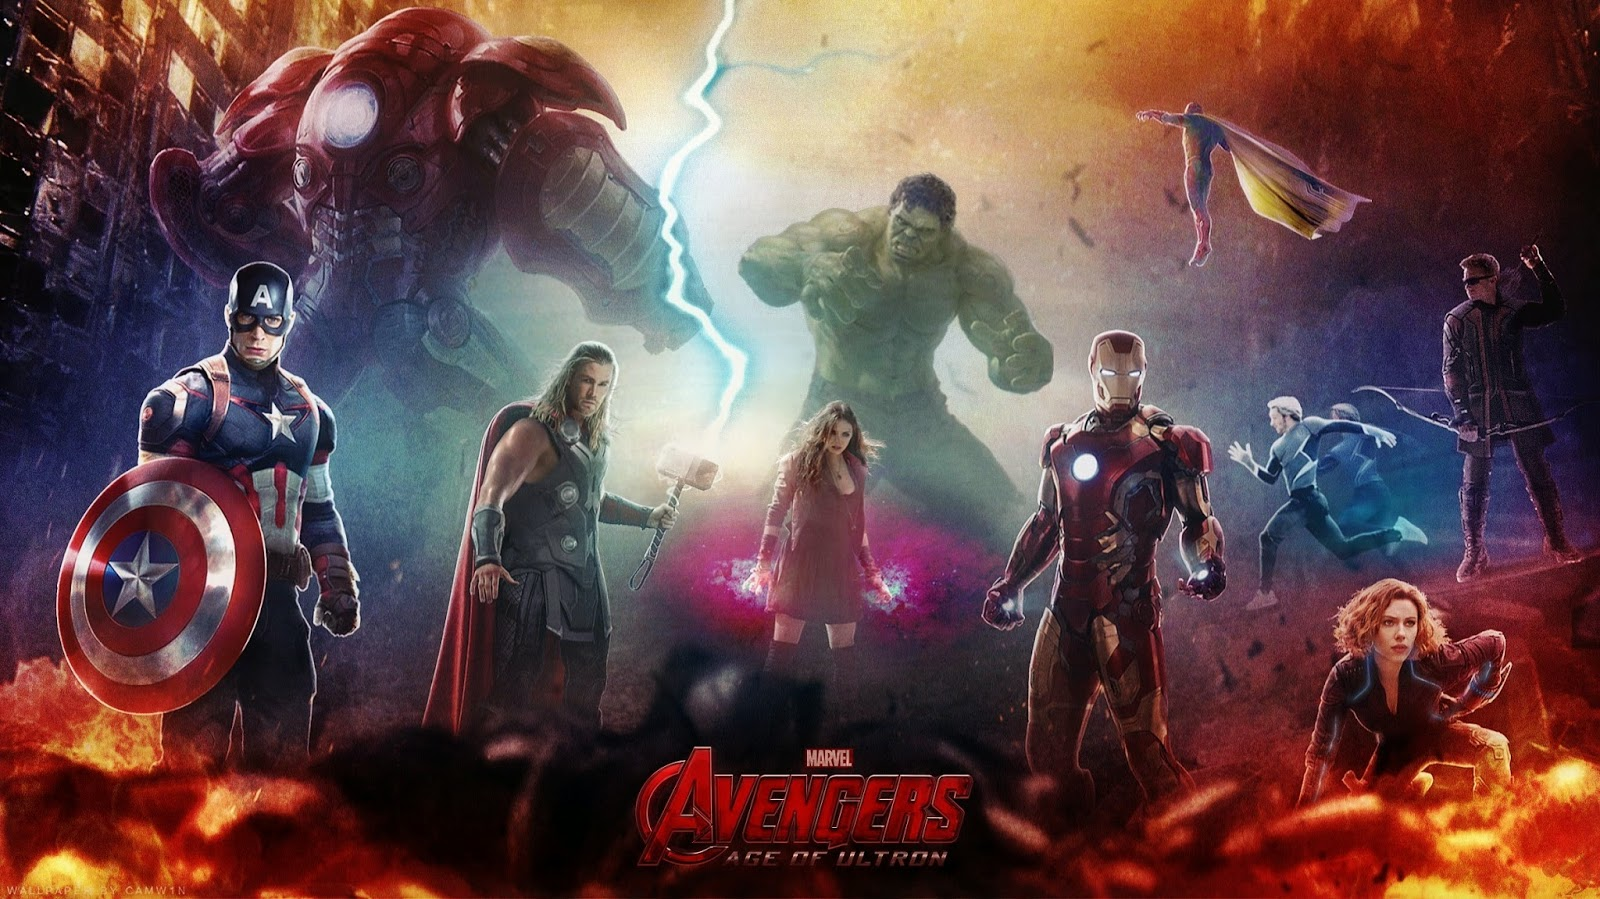 Avengers, Age of Ultron, movie comics Marvel, Robert Downey Jr, Mark Ruffalo, Chris Evans, Chris Hemsworth, Jeremy Renner, Scarlett Johansson, James Spader, Joss Whedon Captain America Iron Man Hulk Thor Black Widow Hawkeye Nick Fury Scarlet Witch Quicksilver Vision